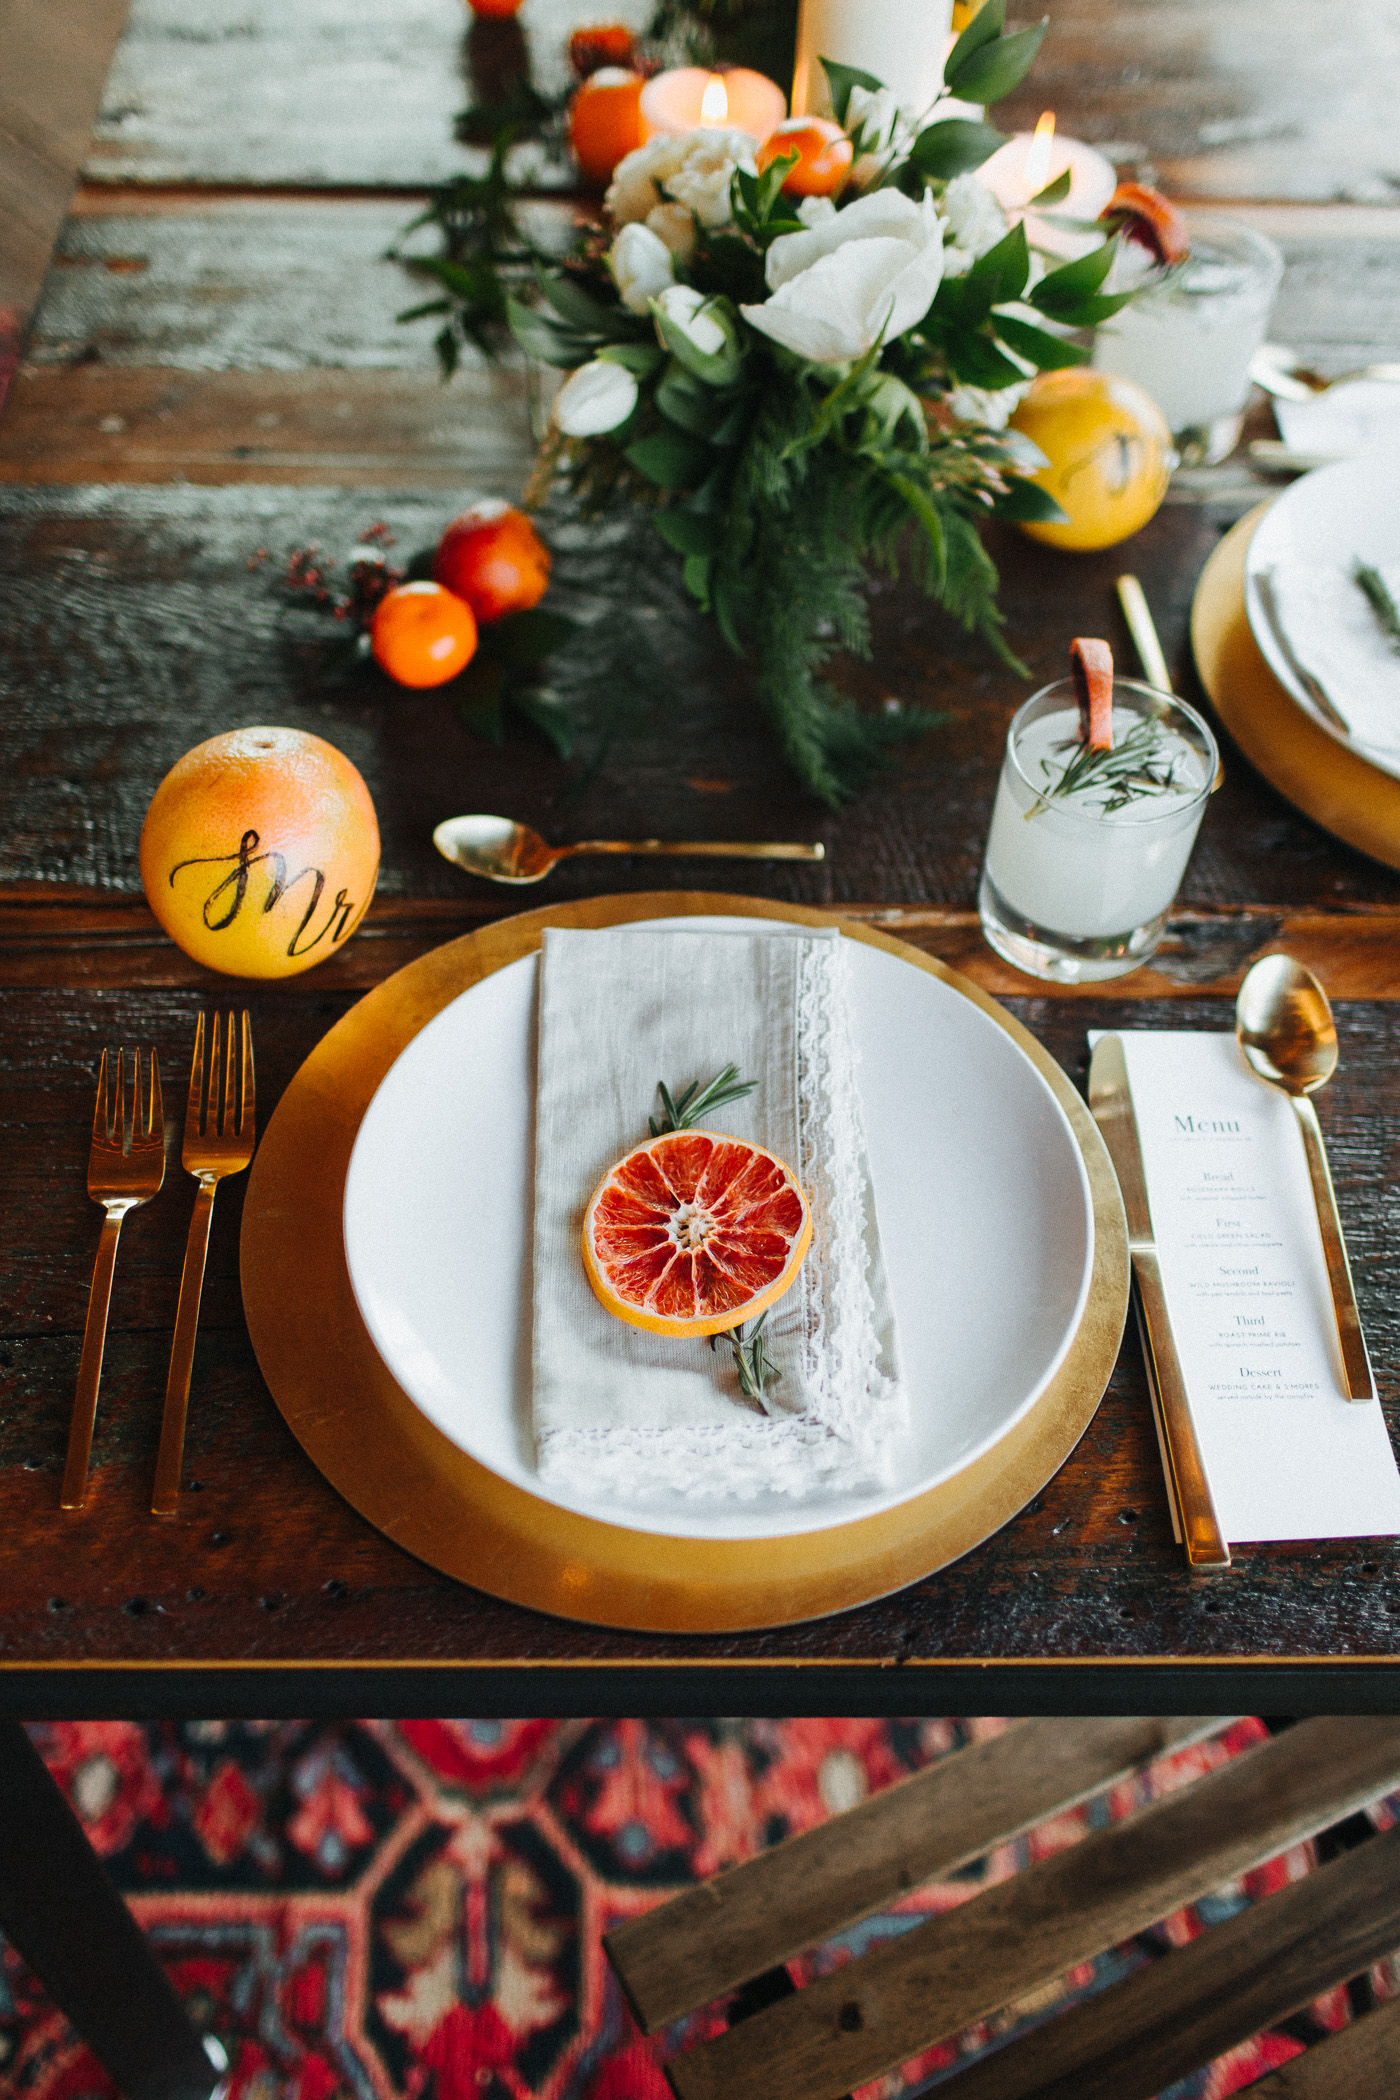 Cedar Lakes Estates Wedding with Citrus Inspired Decor :: The More We See Photography :: Heart & Dash Planning